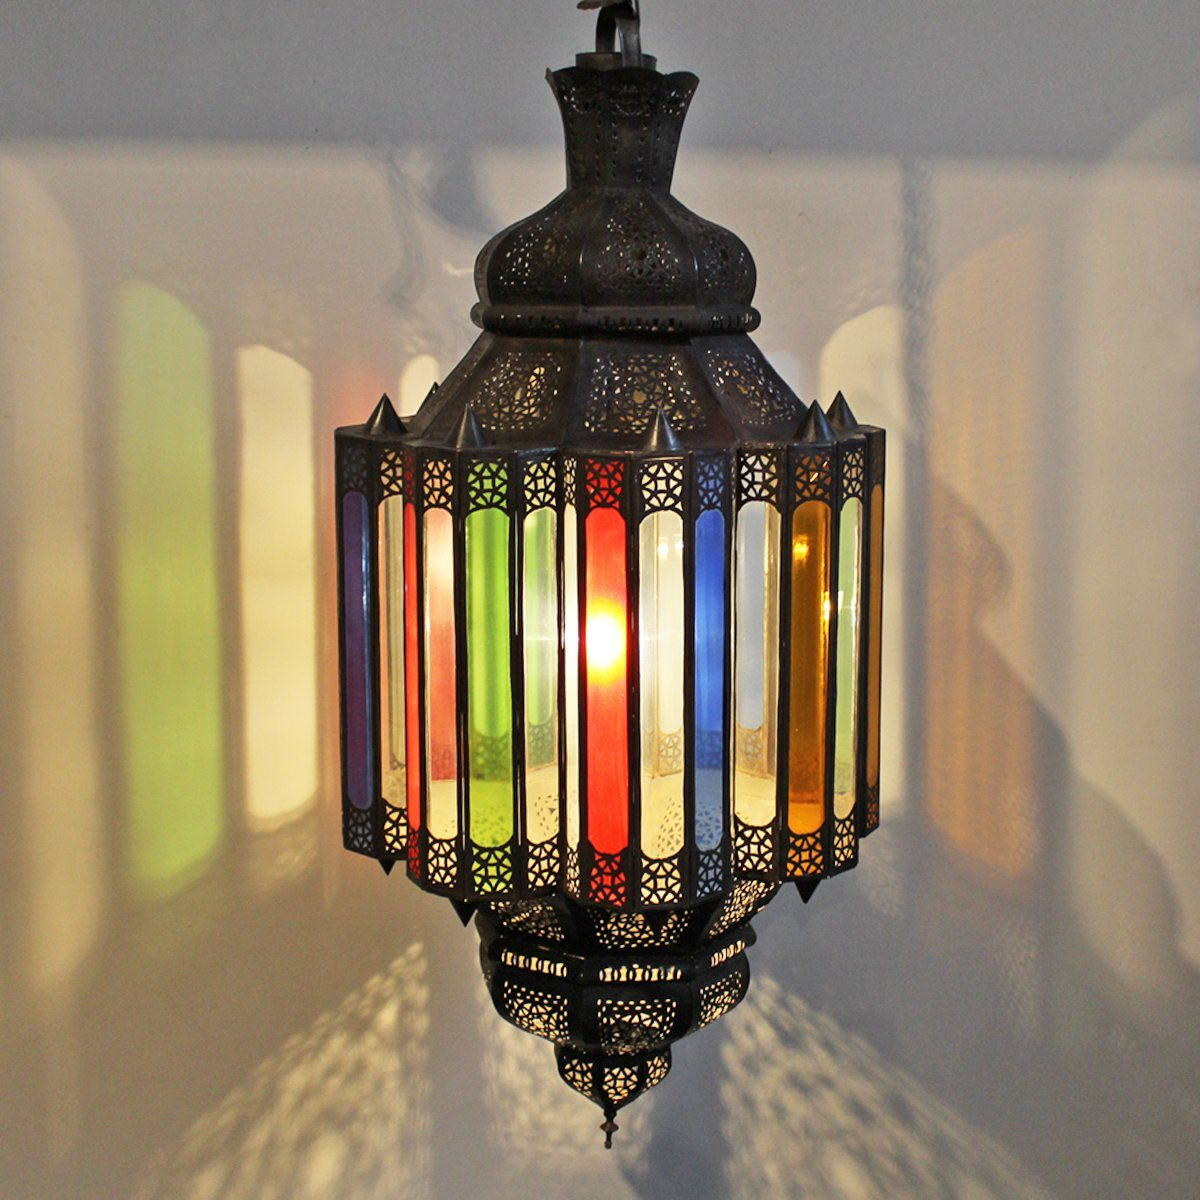 Multicolor moroccan chandelier furniture mix furniture 280000 arubaitofo Gallery